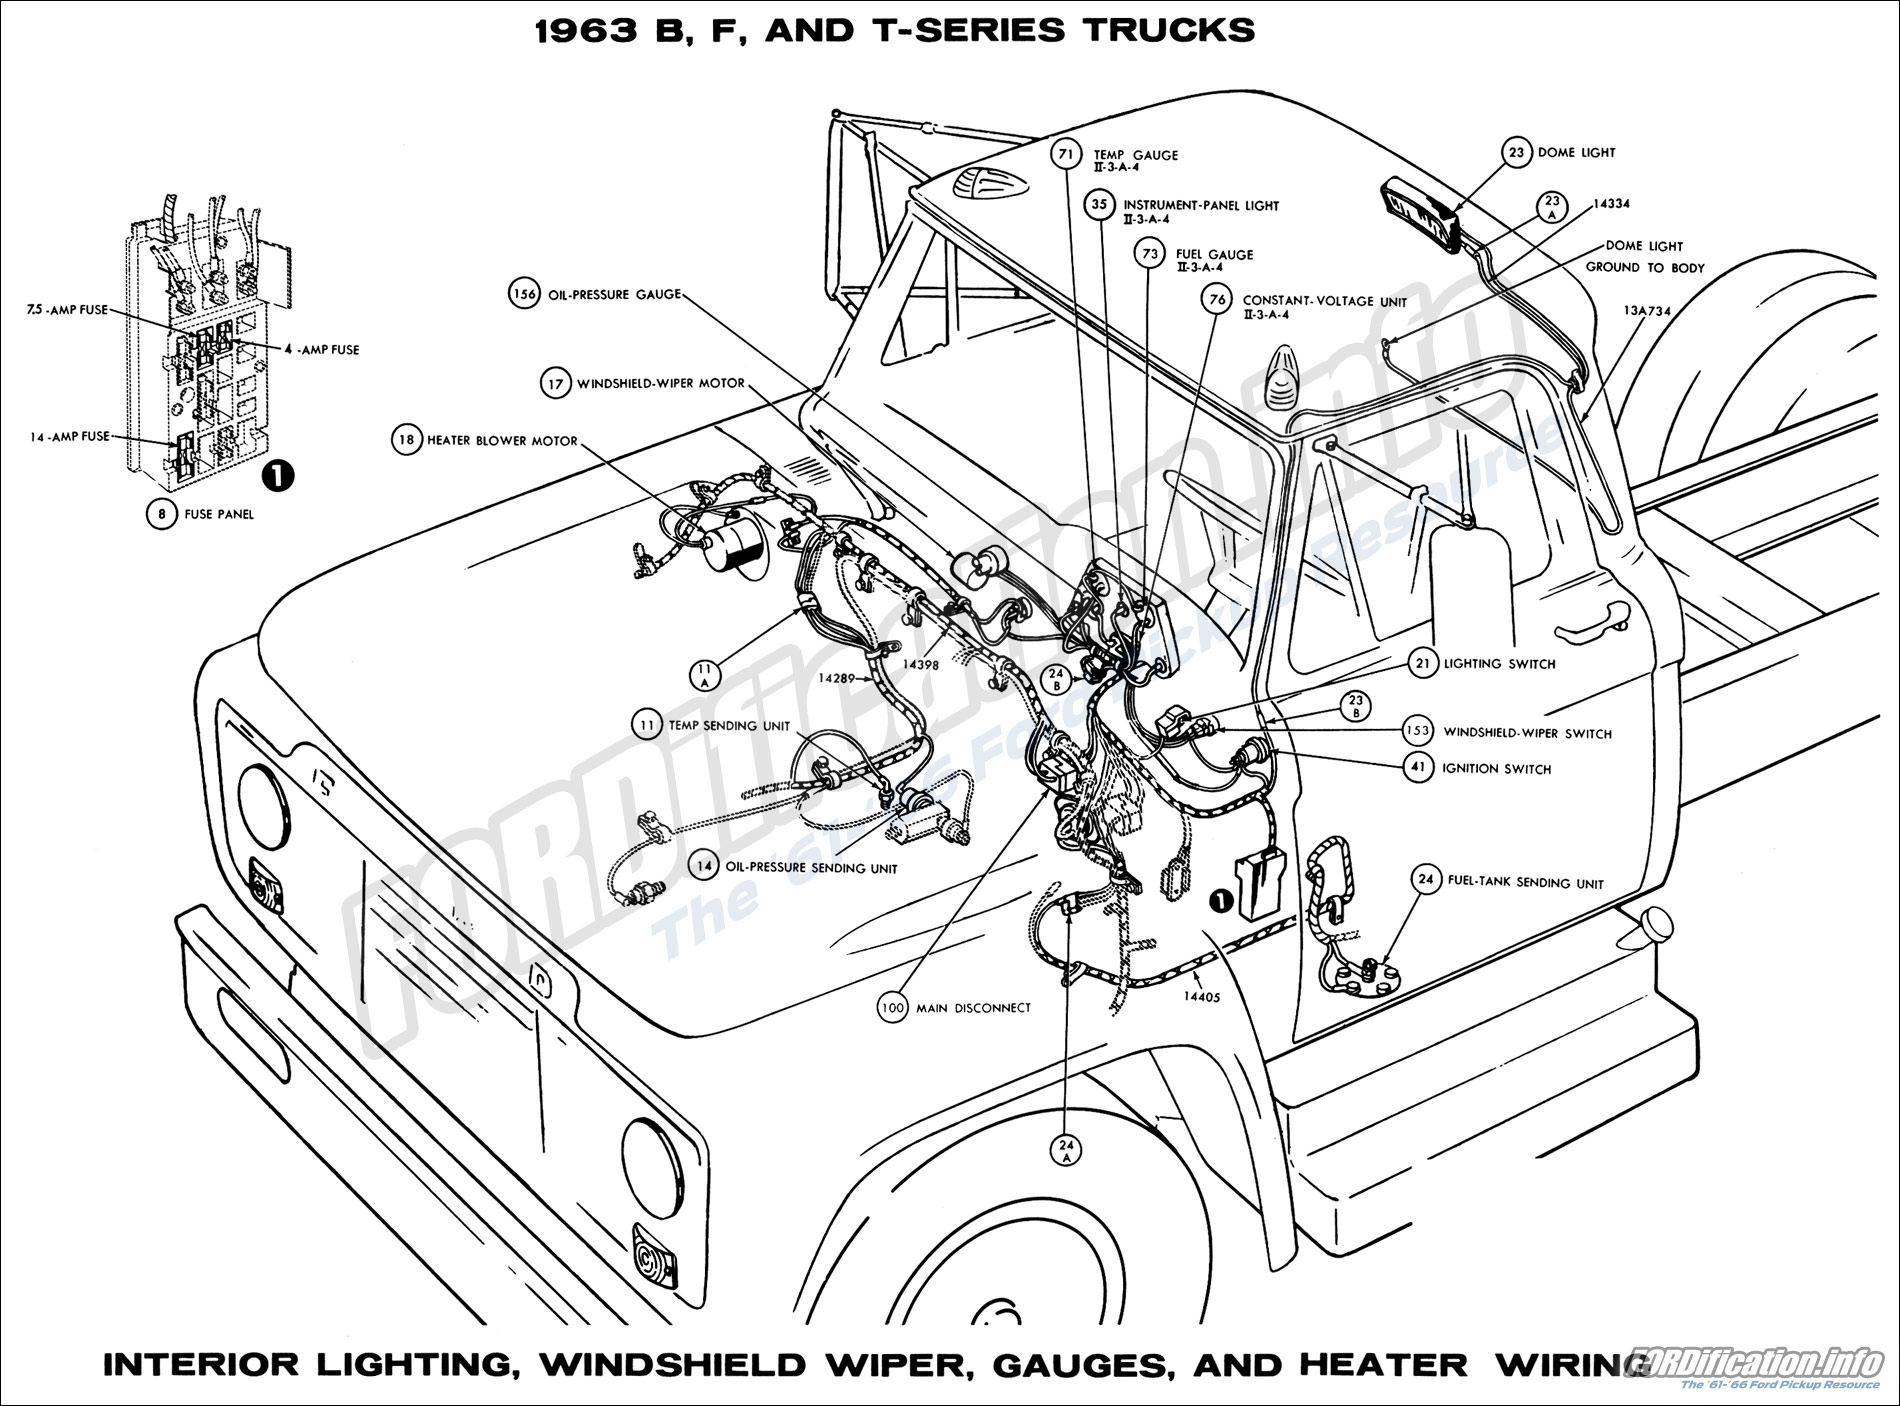 1963 Ford F100 Wiring Diagram from fordification.info